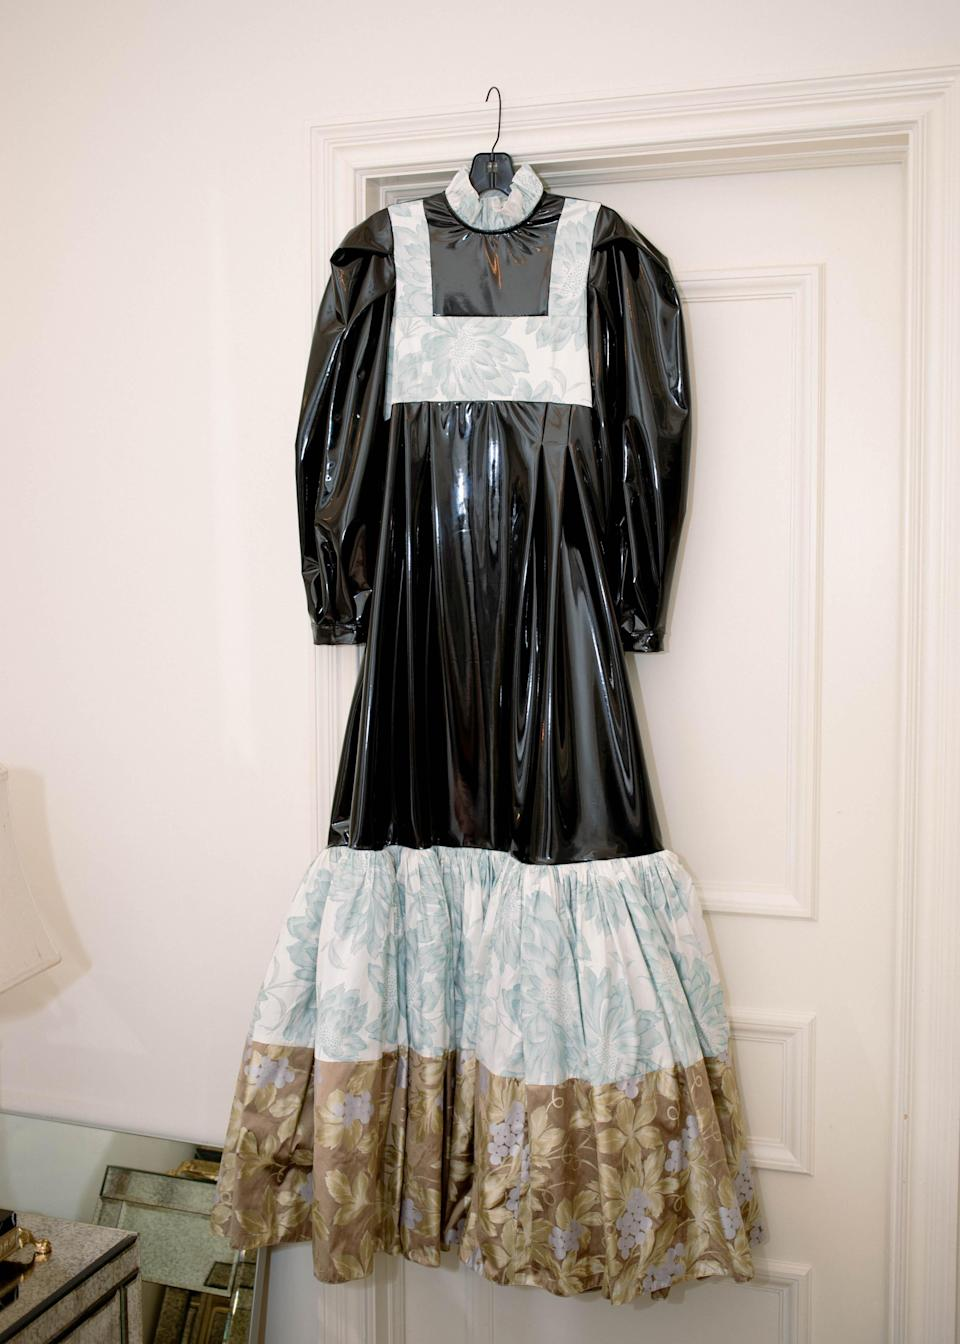 Hall's dress, which Hay made out of PVC and floral print taffeta.